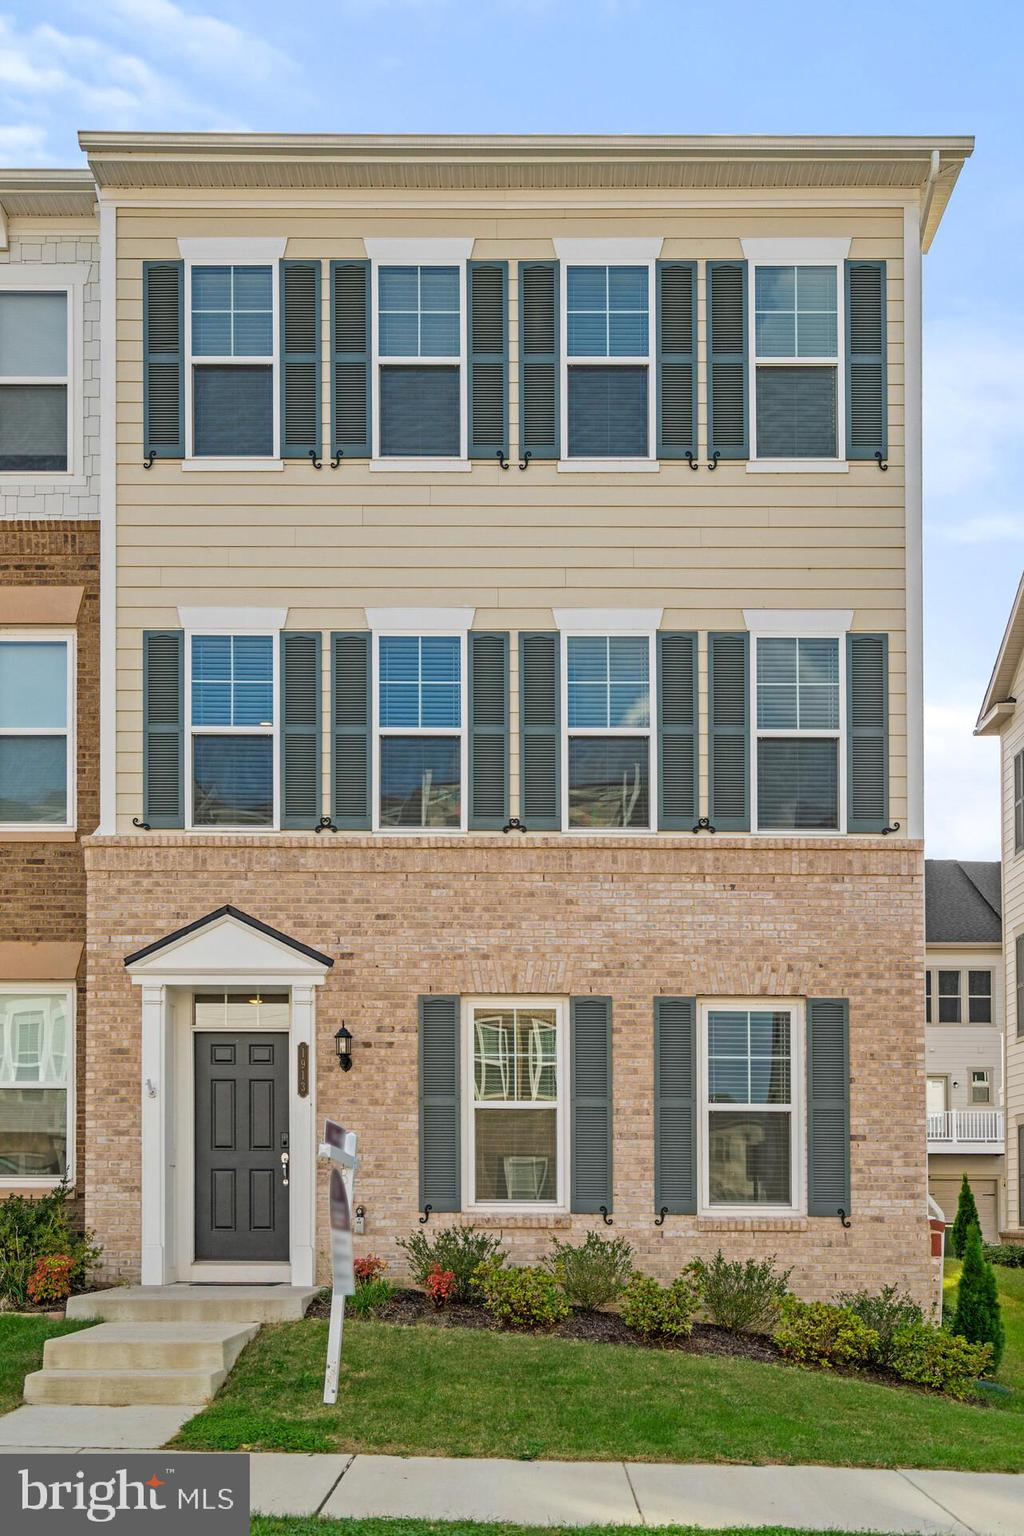 SPACIOUS & INVITING, 4 BED/3.5 BATH, 2 CAR GARAGE END UNIT crafted by Pulte Homes!  CONVENIENTLY LOCATED near the Entrance Gate, Fairway, and Clubhouse.  This home is in one of the recently completed townhome sections, so NO CONSTRUCTION NOISE.  HARDWOOD on ENTIRE MAIN LEVEL!  HUGE Gourmet Kitchen and Dining Area, Stainless WI-FI ENABLED APPLIANCES including Gas Cooktop, Hood Vent, French Door Frig w/Ice Maker, Dishwasher, Built in Convection Microwave & Oven; Walk in Pantry & Island that extends for days!!  EAT, DRINK, COOK, WORK, RELAX, ENTERTAIN.......whatever you need to do, there is MORE THAN ENOUGH SPACE to do it!  Need hobby/rec/activity rooms?  Have kids, pets, overnight guests, or extended visits??......Choose from one of the LARGE SECONDARY BEDROOMS on the Upper Level or the PRIVATE SUITE on the Lower Level.   Whatever your day brings, escape it all in the LUXURY OWNER'S RETREAT and lock the door behind you!  PLENTY OF ROOM for a King Size Bed, lots of natural light, and the OWNER'S BATH is just a few steps away; including DESIGNER TILE PLANK FLOORING, Shower w/top to bottom Subway Tile & Mosaic Shower Pan, Dual Towel Bars,  DOUBLE SINKS w/UPGRADED VANITIES & Natural Stone Vanity Top, Separate Water Closet, & W.I.C. for clothes, shoes, and/or storage with  built in wire shelving!  On the exterior enjoy a Partial BRICK FRONT, and to the rear a LOW to NO MAINTENANCE COMPOSITE DECK and private driveway from the residents access road.  Why wait for new construction and deal with delivery delays, subbing your selections, inventory/manufacturing shortages, hefty price increases, and overall uncertainty??  This home is LESS THAN 2 years old and LIKE NEW!  Owner is military and transferring to the West Coast or this would have been a home for the ages!  If you're not familiar with the area, please Google Potomac Shores & Stonebridge Town Center.  Award Winning Golf Course, VRE, Exclusive Schools, Upscale Shops & Dining all nearby.  Enjoy the Northern VA feel but w